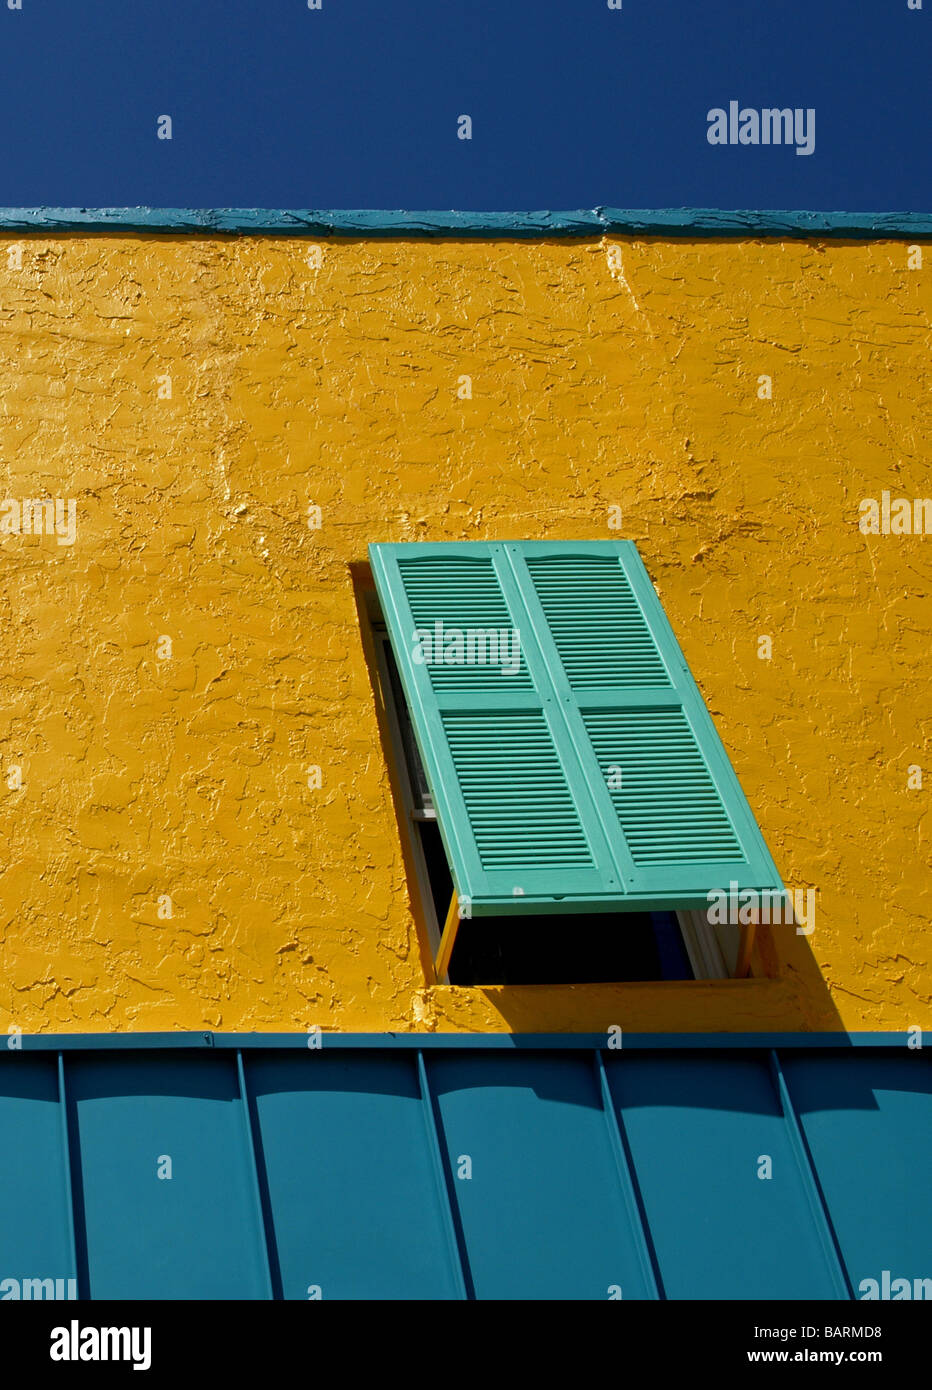 open tourquoise colored window on a bright yellow and blue wall at the beach with dark blue sky - Stock Image